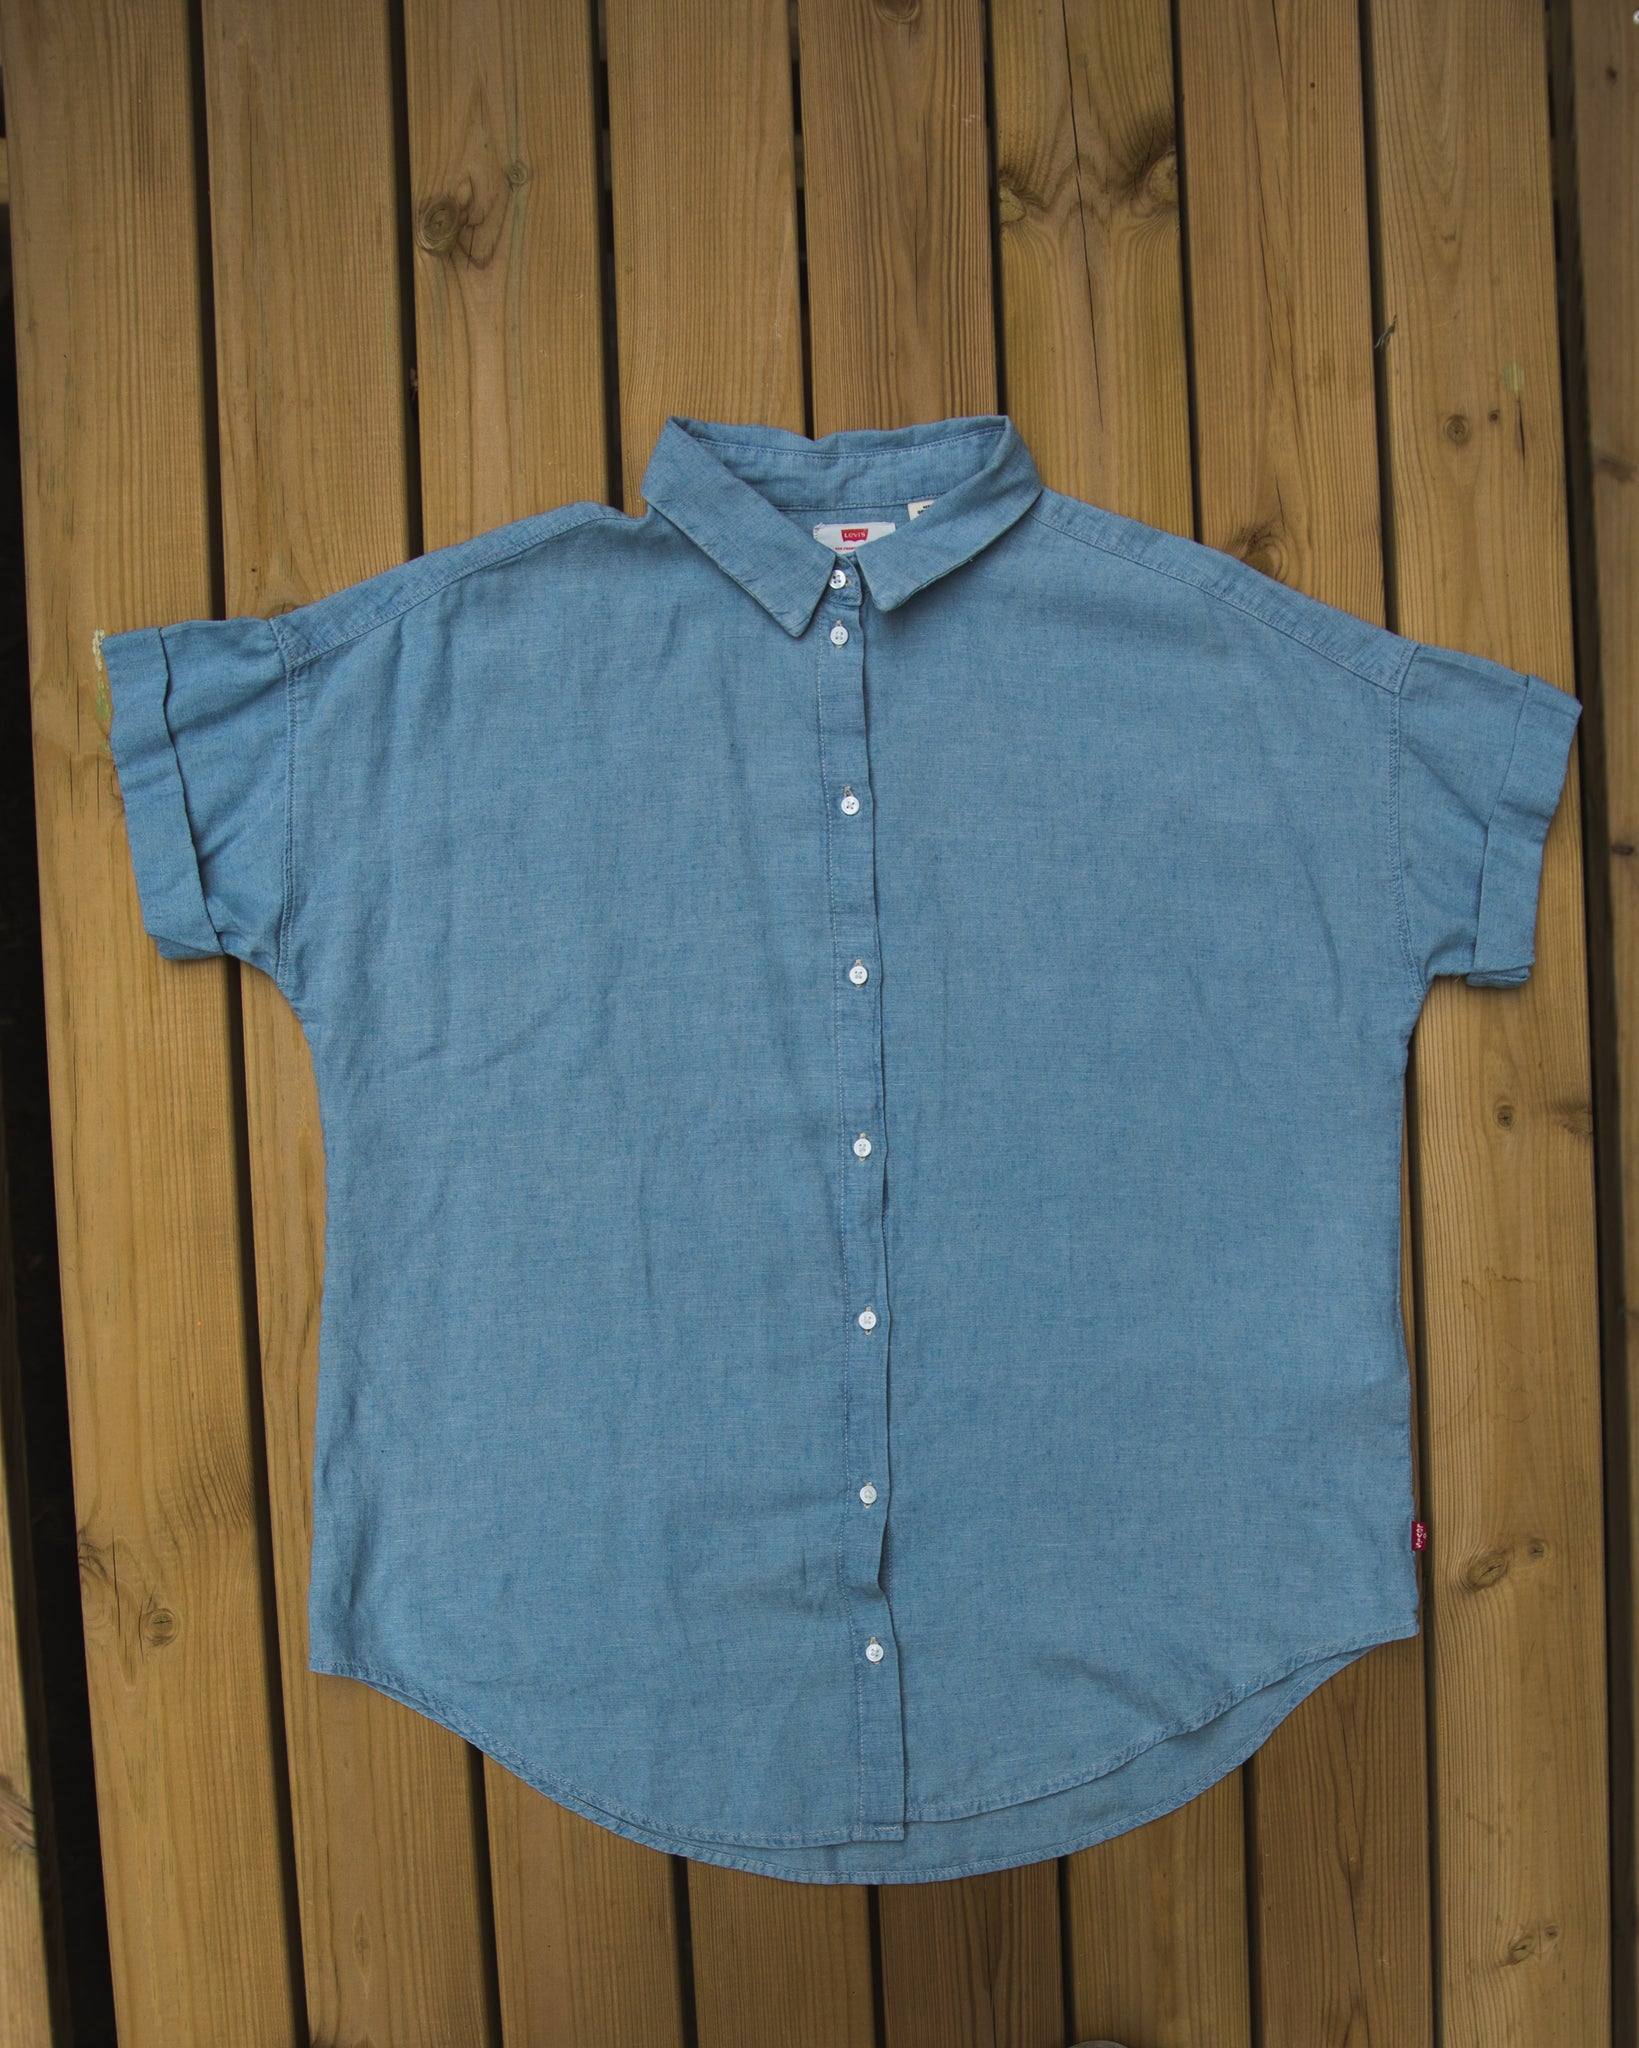 Chemise bleue - Taille M